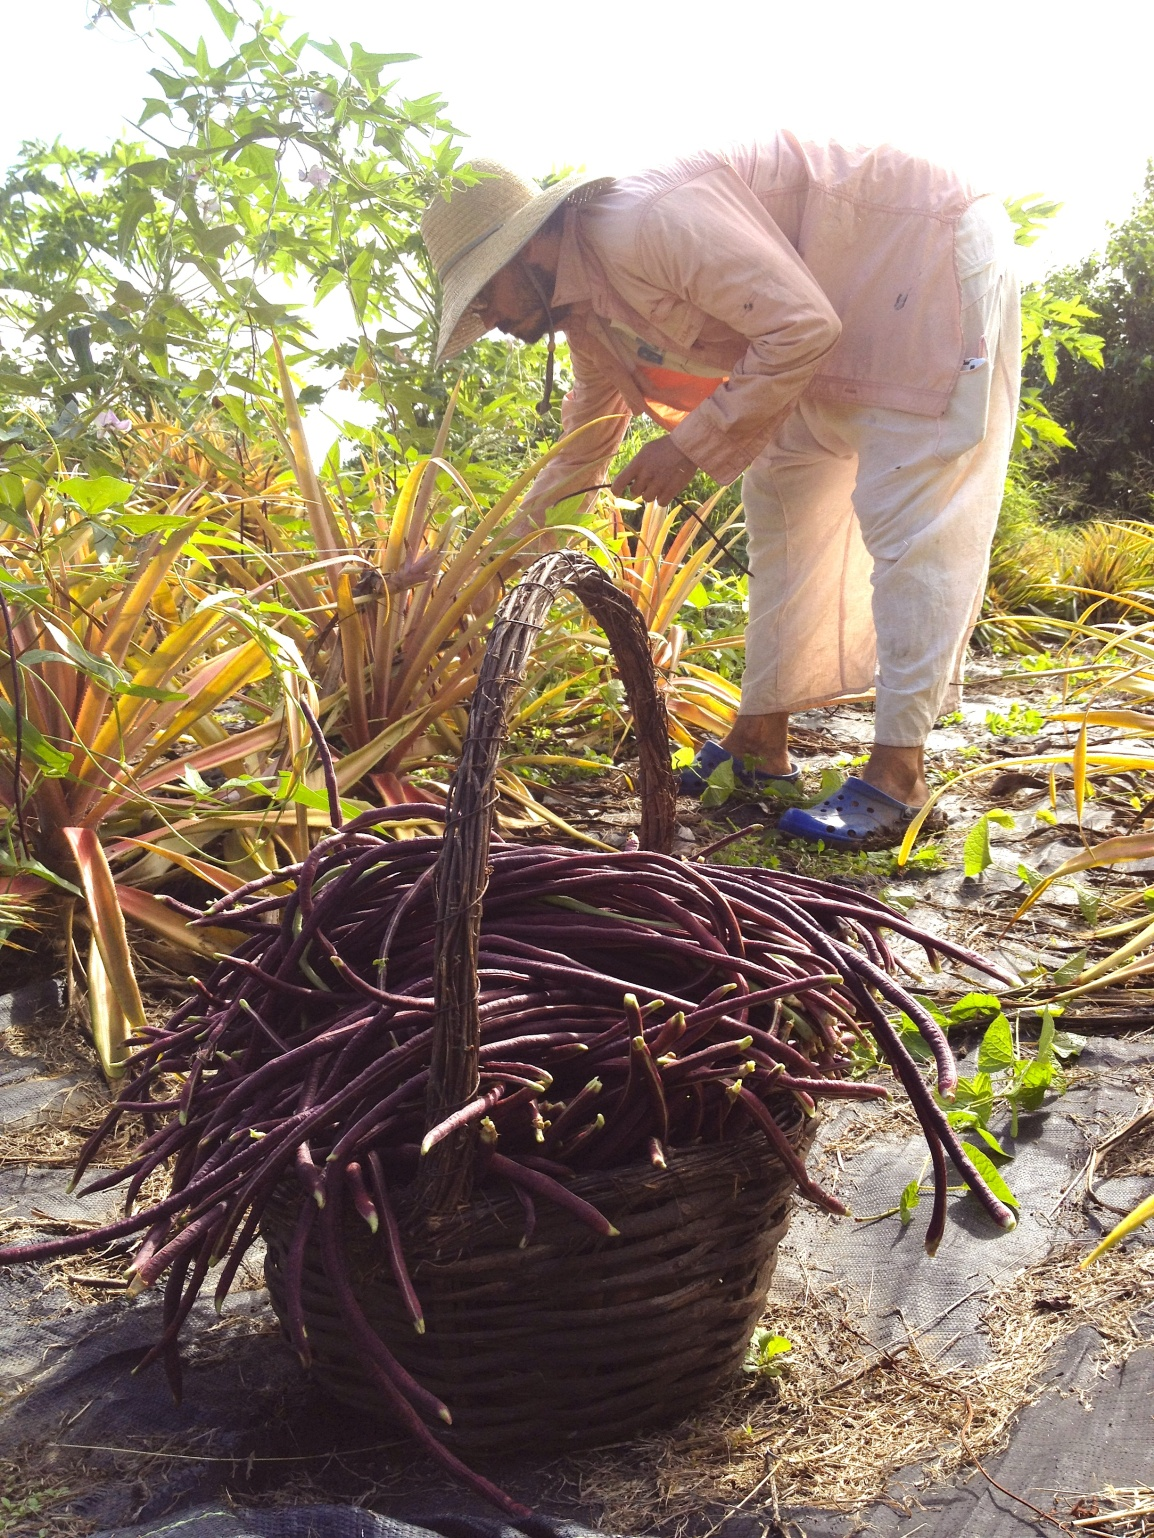 Farmer Luca at ARTfarm picking for an overflowing basket of yard-long purple stringbeans - growing in the pineapple patch.